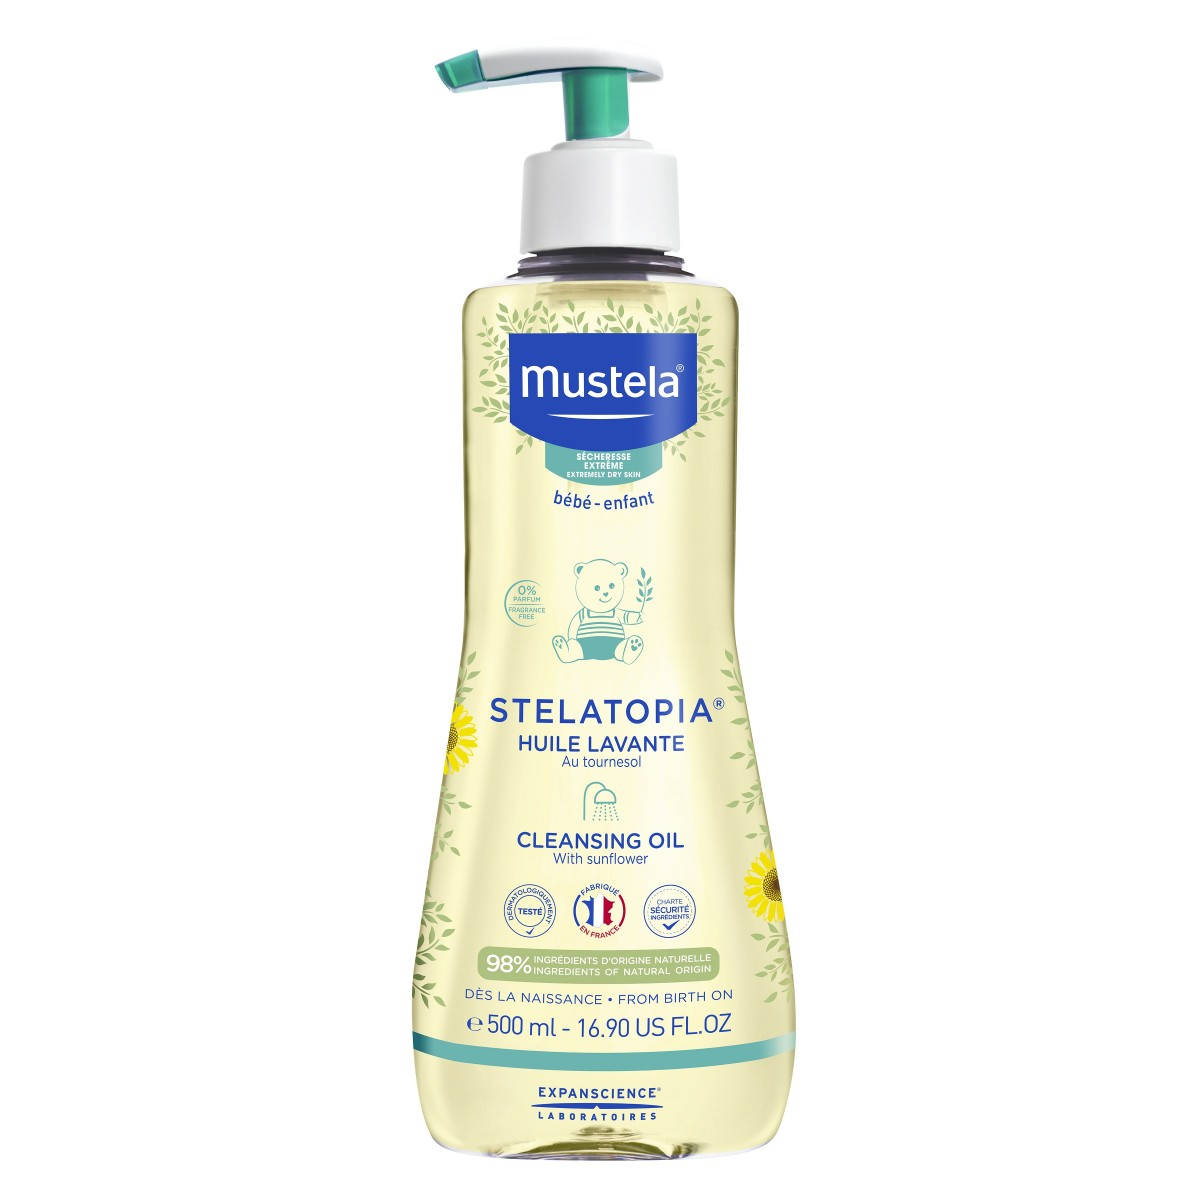 Mustela Stelatopia Cleansing Oil 500 ml